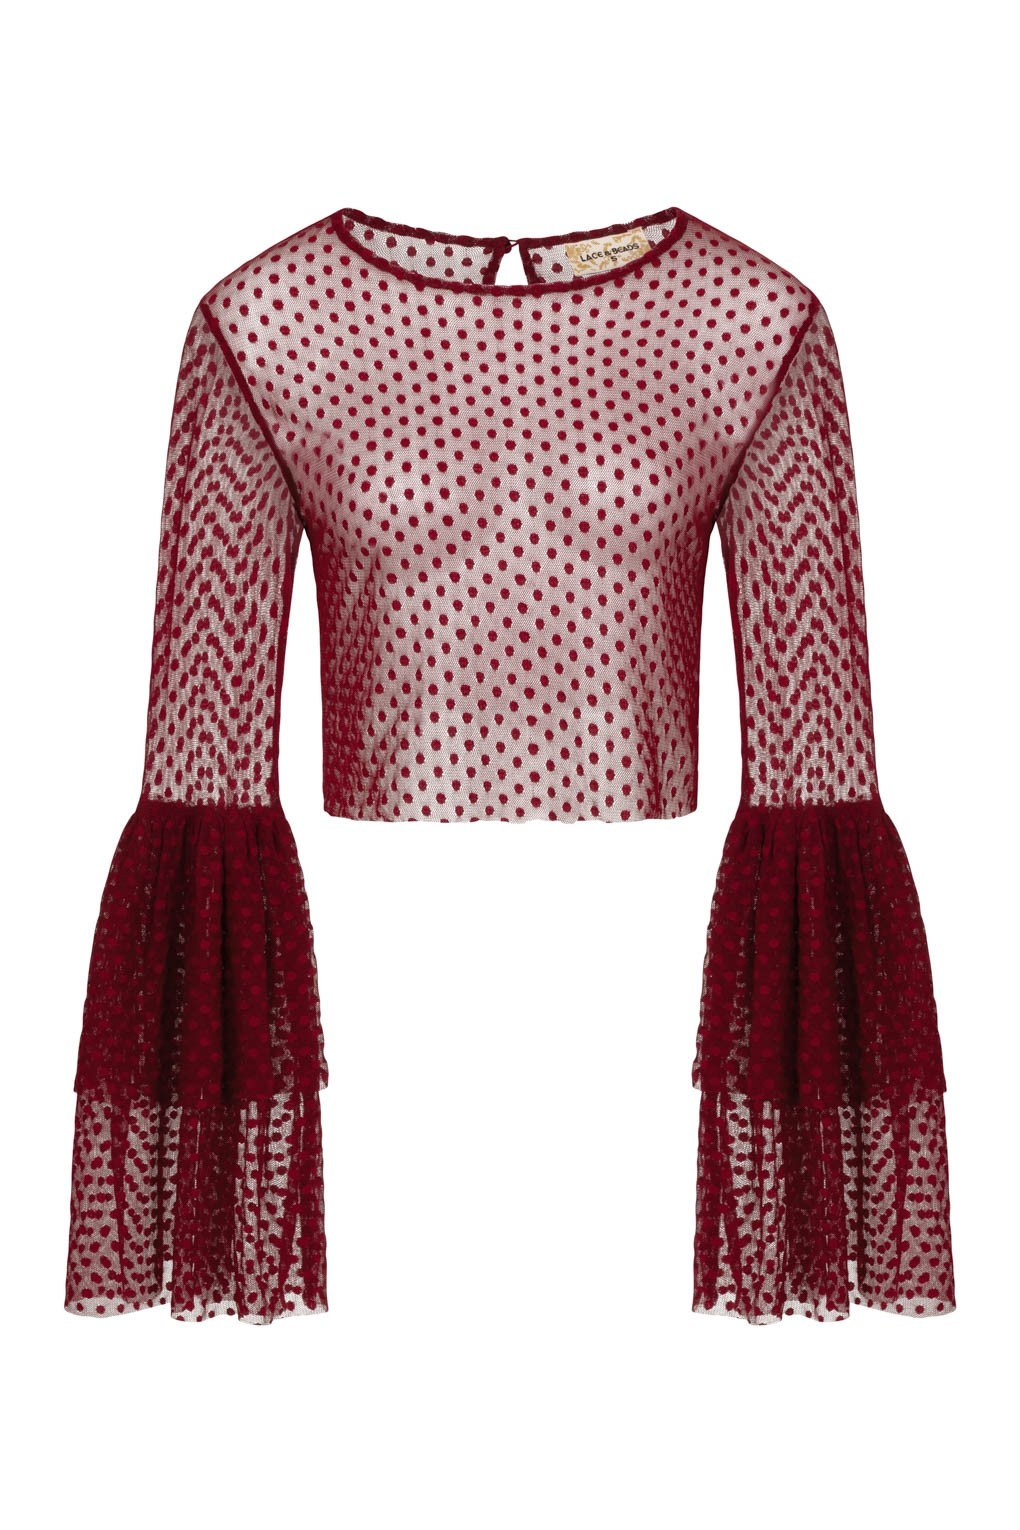 Lace Amp Beads Loon Burgundy Sheer Crop Top Lace Amp Beads Tops